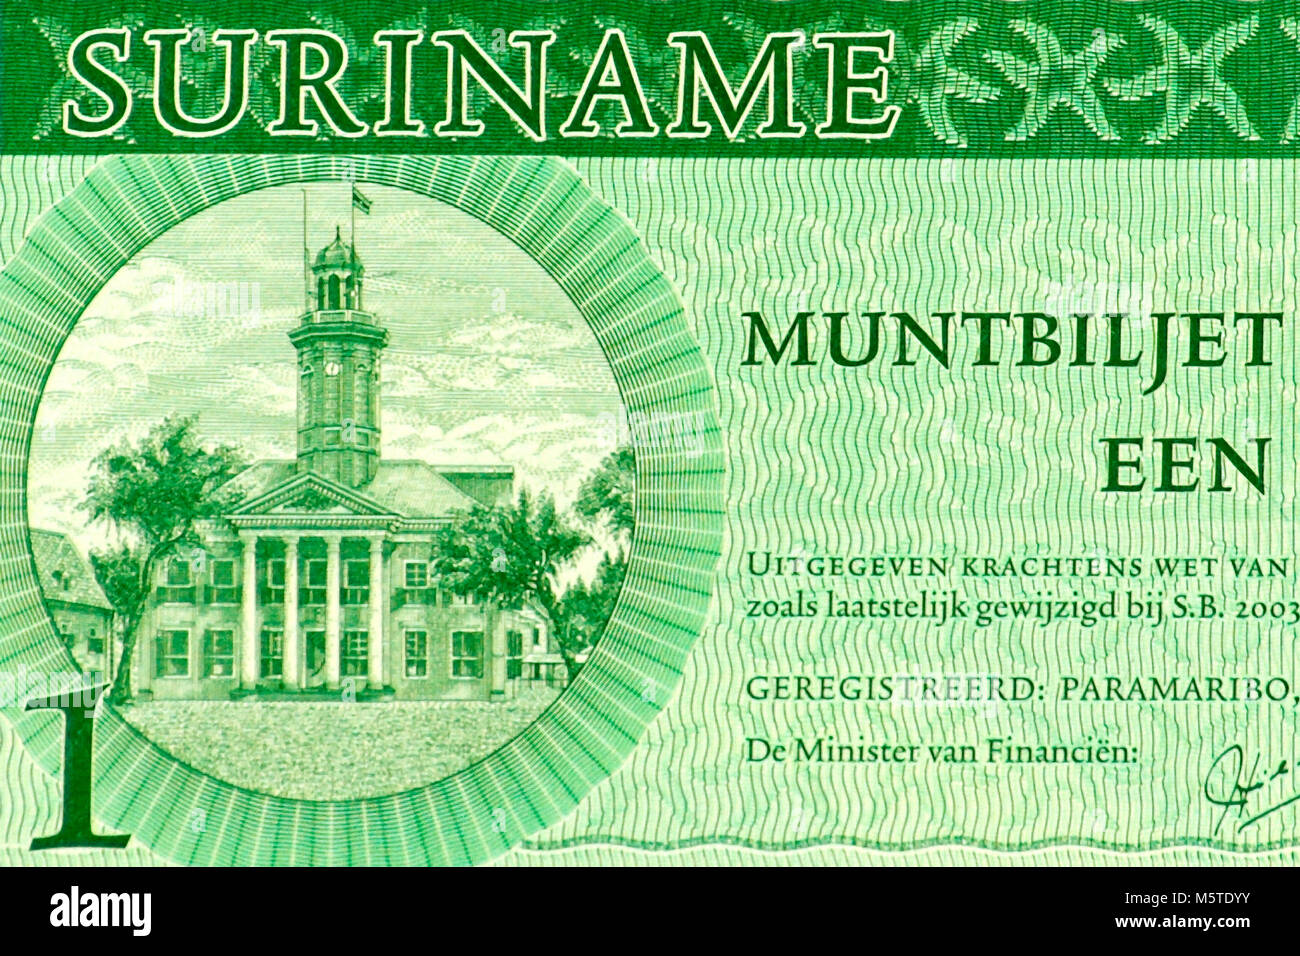 Suriname One 1 Dollar Bank Note Stock Photo